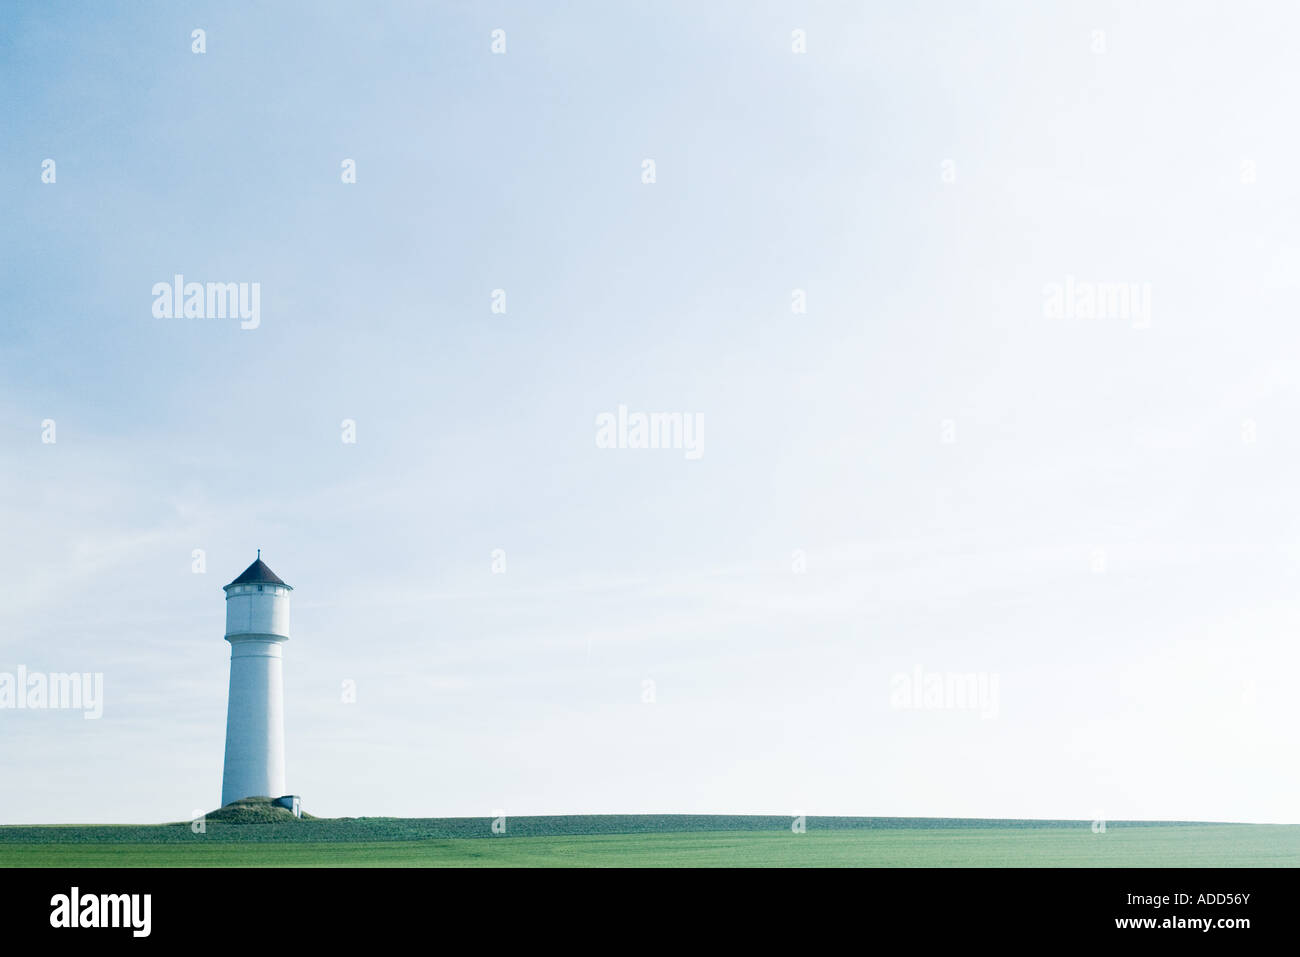 Tower in green field - Stock Image